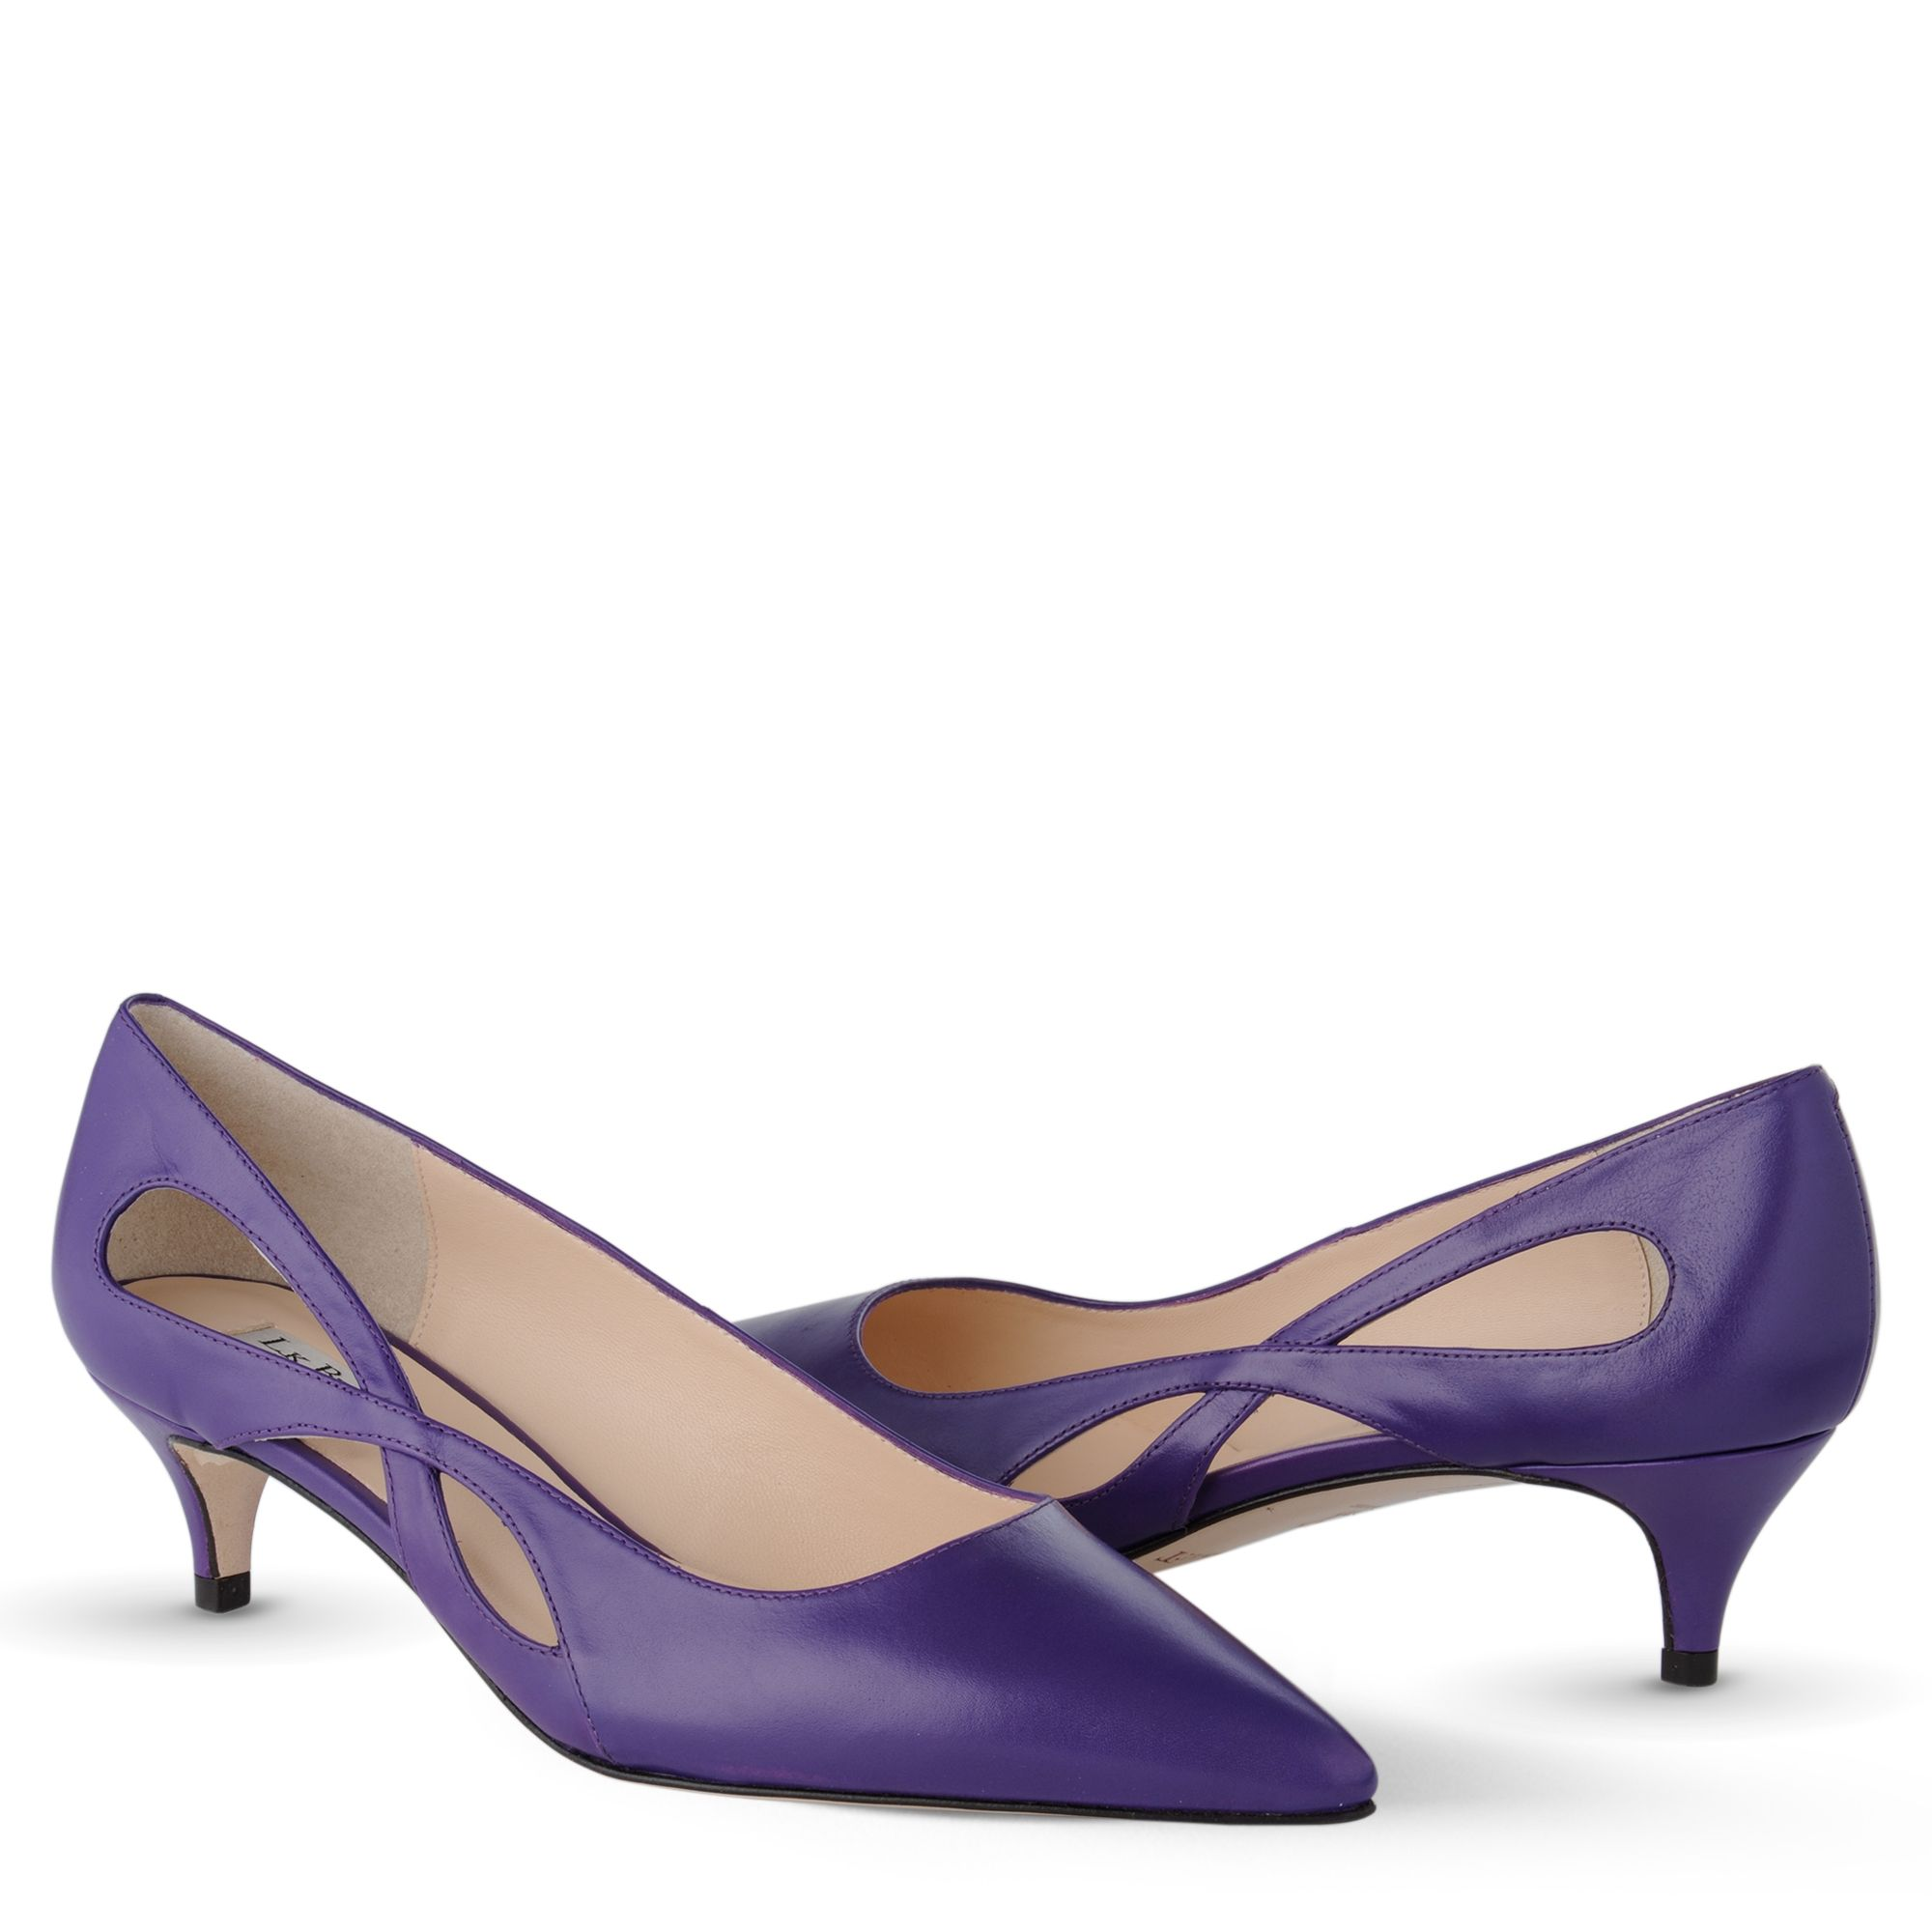 bennett Azalea Kitten Heel Court Shoes in Purple (violet) | Lyst: www.lyst.com/shoes/lk-bennett-violet-azalea-kitten-heel-court-shoes...